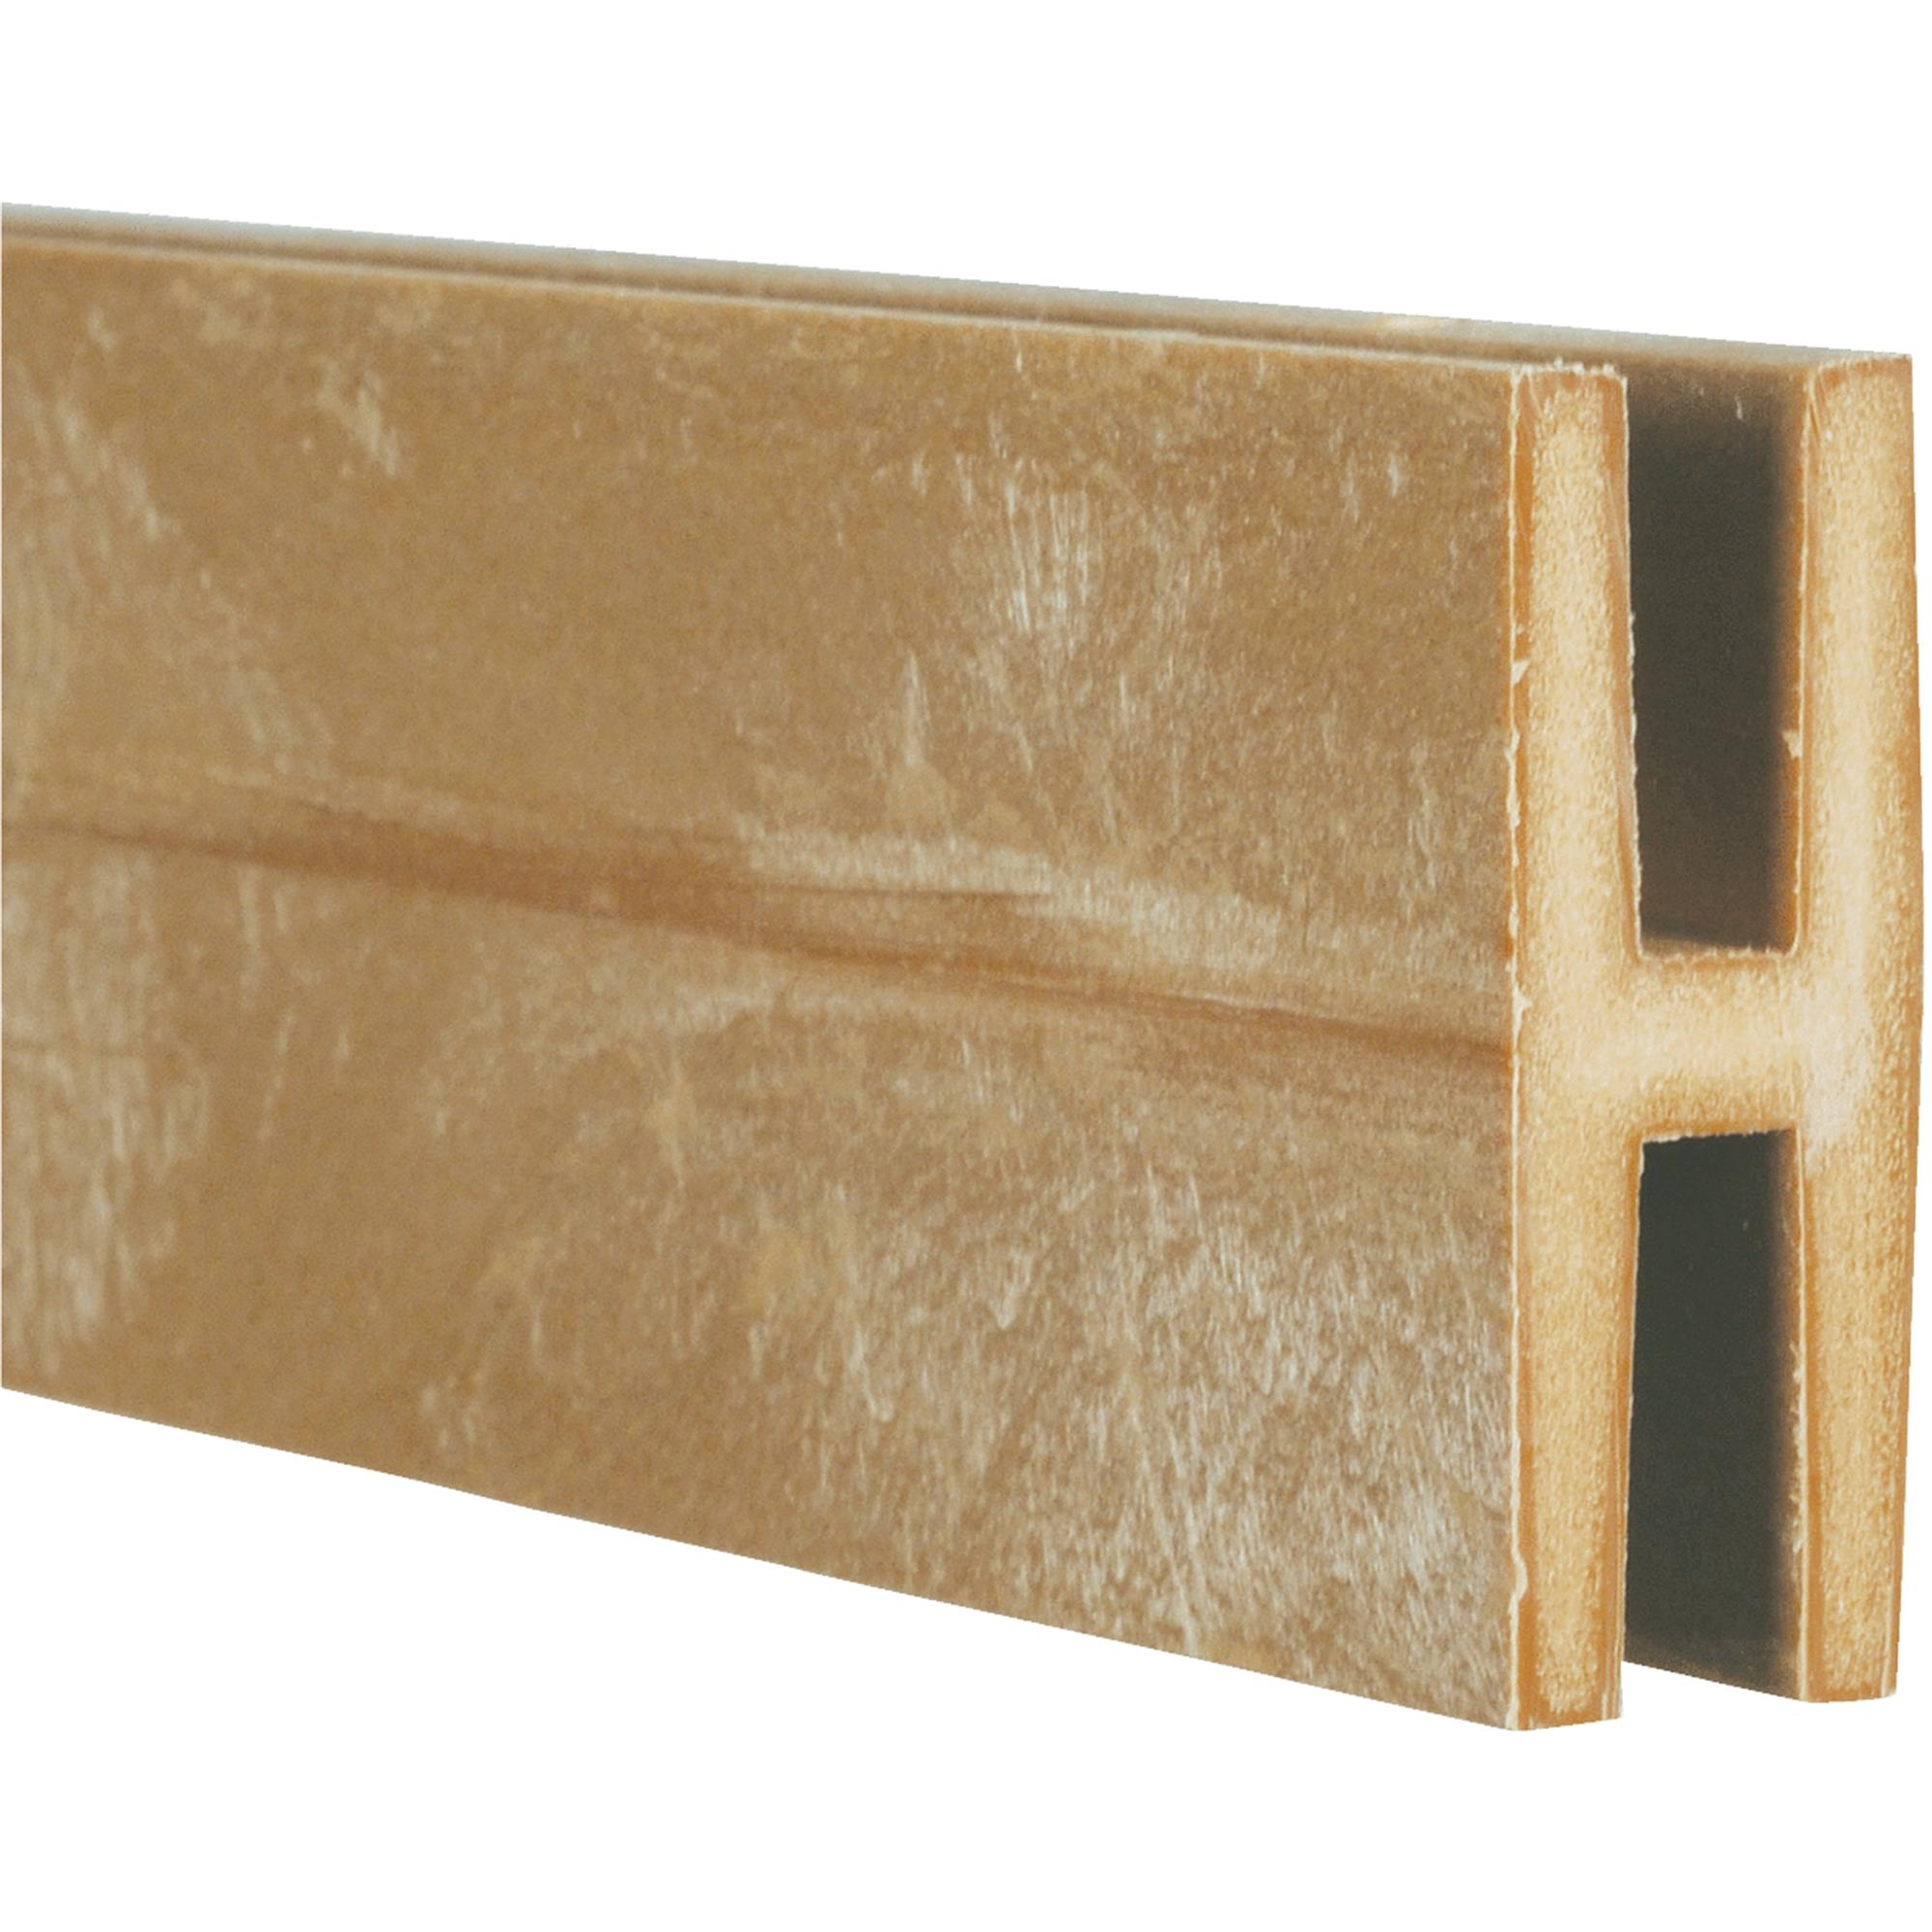 Dimensions Panel Divider